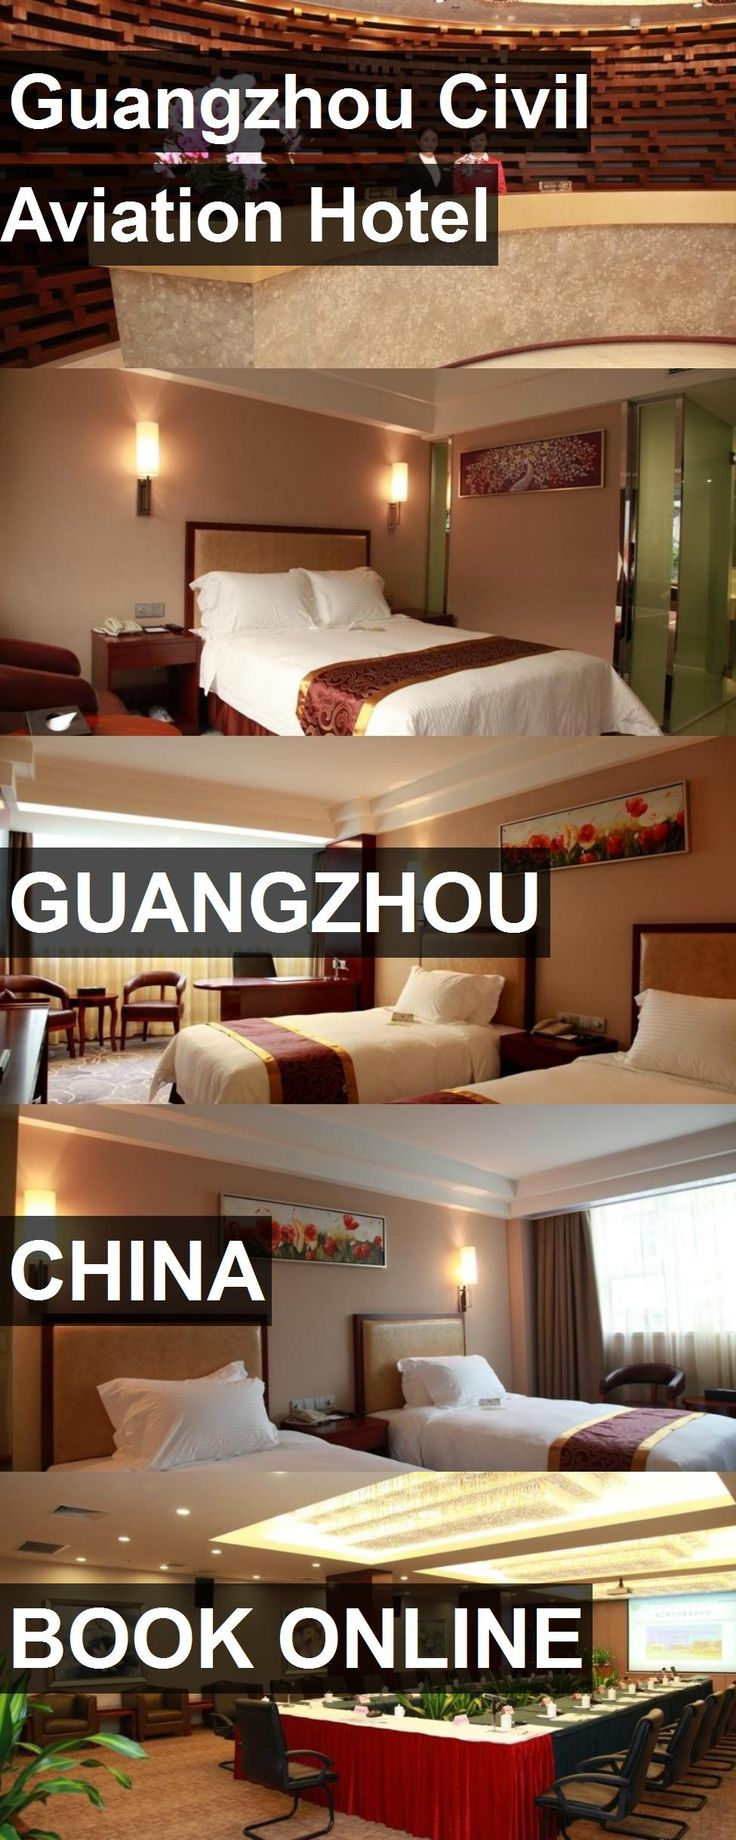 Guangzhou Civil Aviation Hotel in Guangzhou, China. For more information, photos, reviews and best prices please follow the link. #China #Guangzhou #travel #vacation #hotel